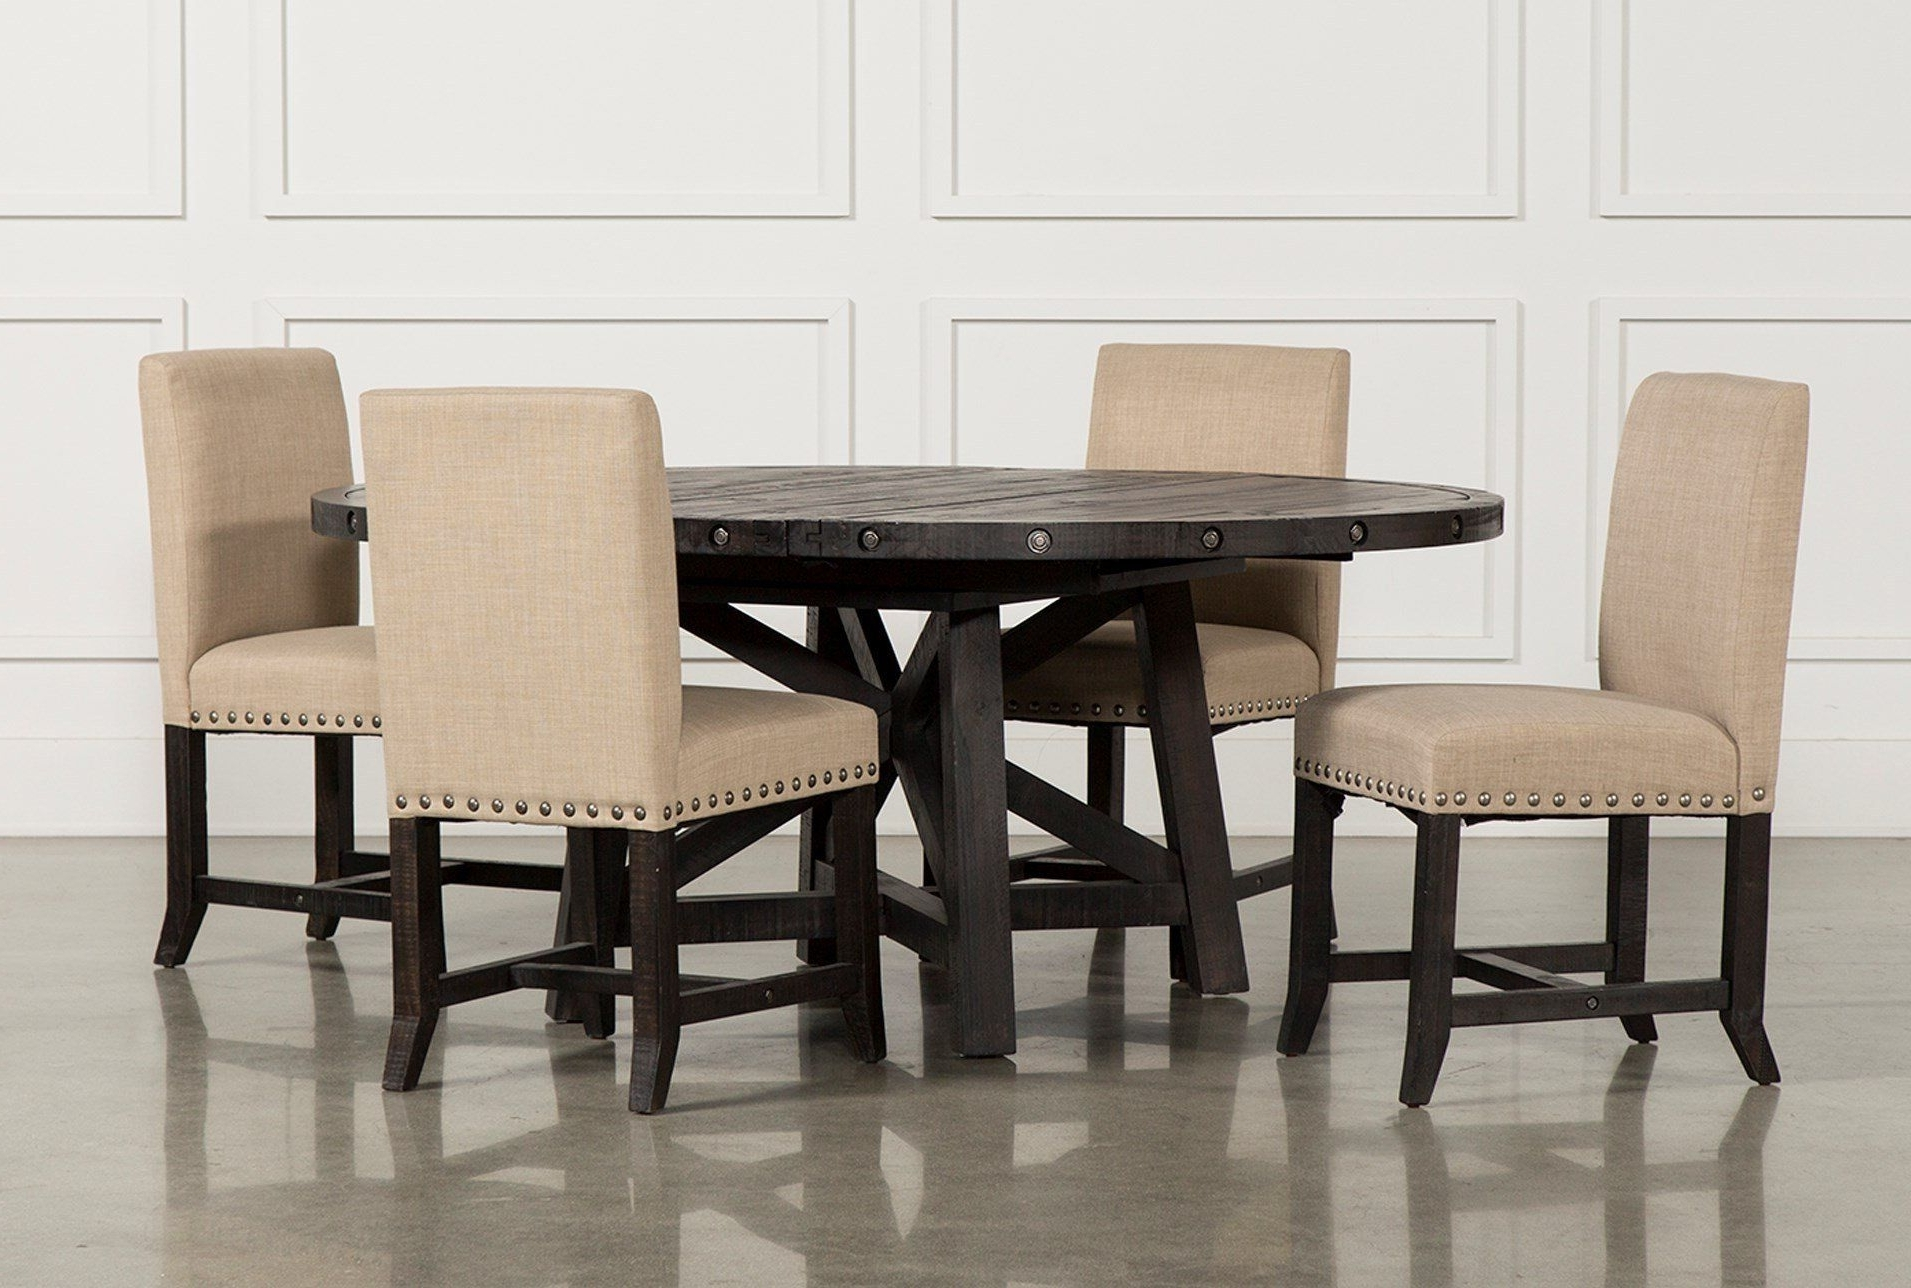 Current Jaxon 7 Piece Rectangle Dining Sets With Upholstered Chairs With Jaxon 5 Piece Round Dining Set W/upholstered Chairs (Gallery 1 of 25)